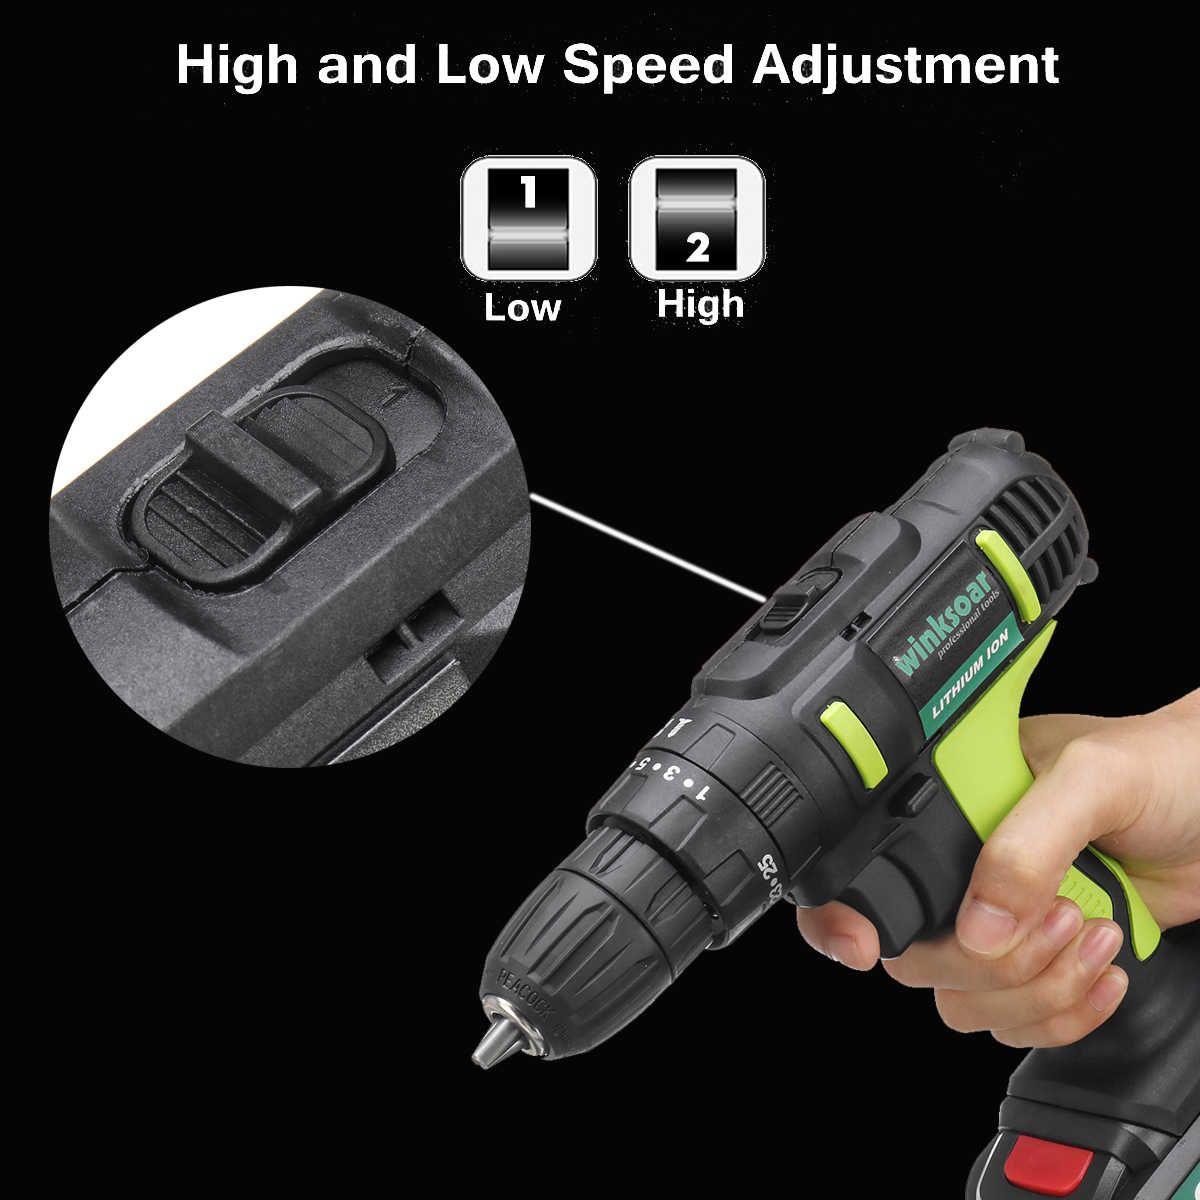 AC 100-240V Electric Screwdriver 48V Cordless Drill Rechargeable LI-ION Battery 25+1 Torque Adjustment Power Tools